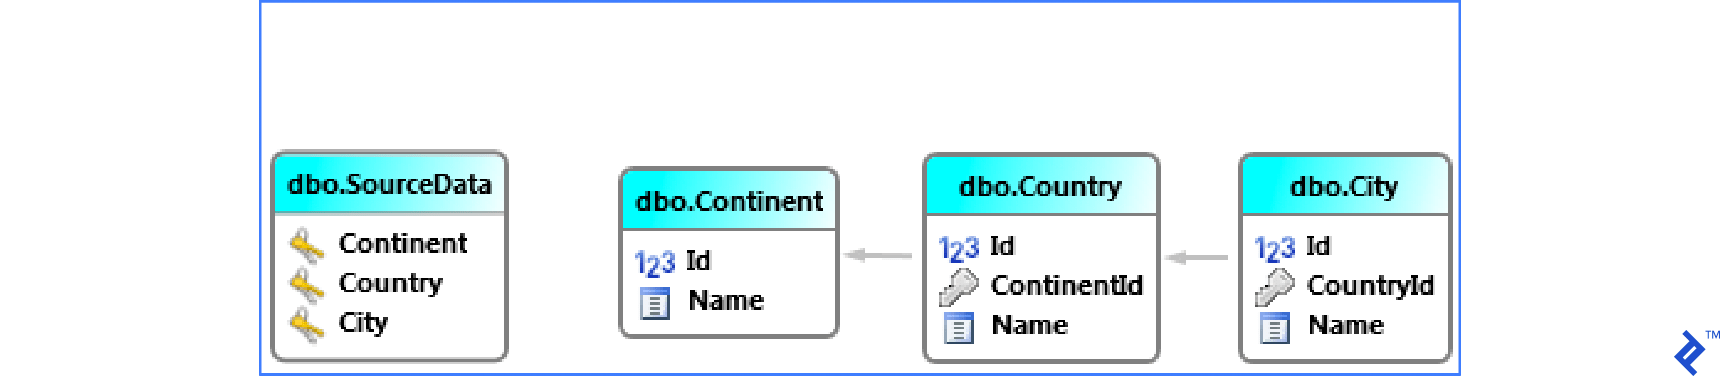 Scheme for example database